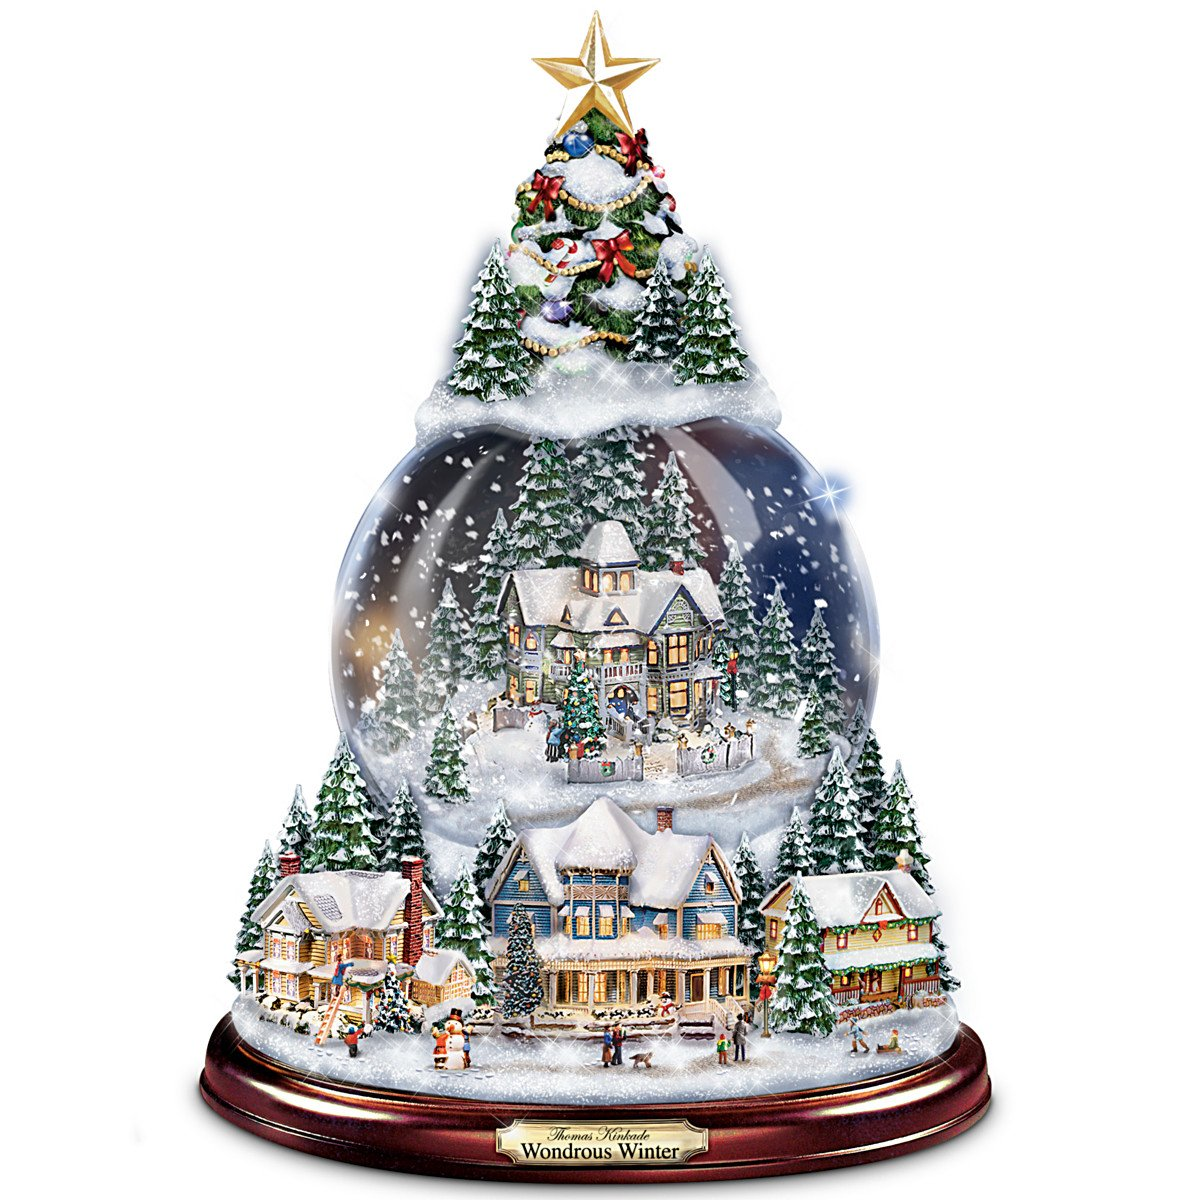 amazoncom thomas kinkade wondrous winter musical tabletop christmas tree with snowglobe lights up by the bradford exchange home kitchen